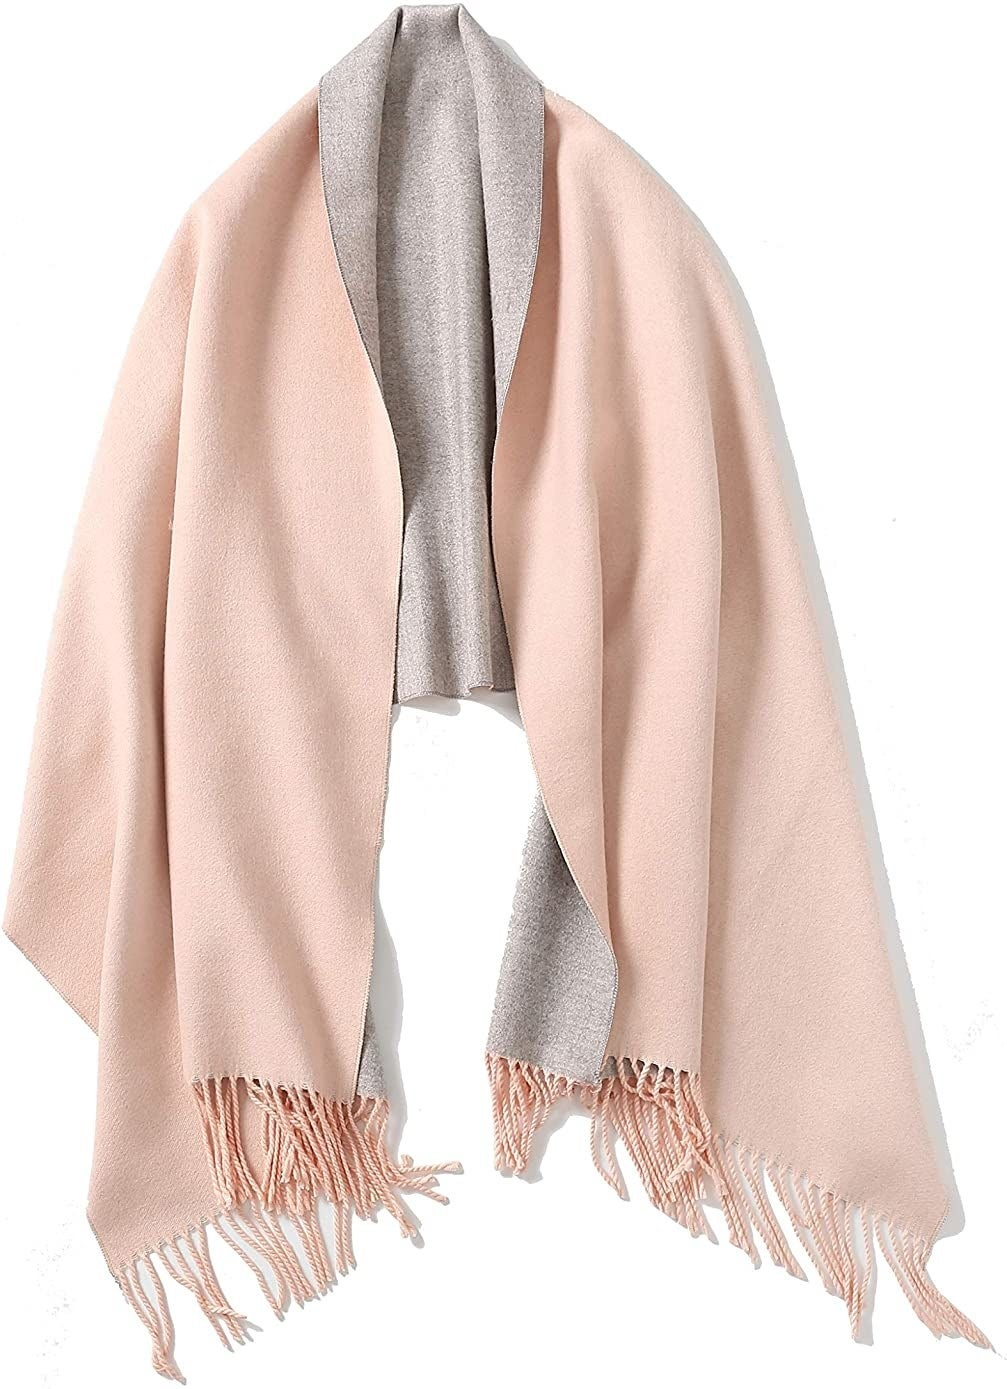 The scarf in pink gray